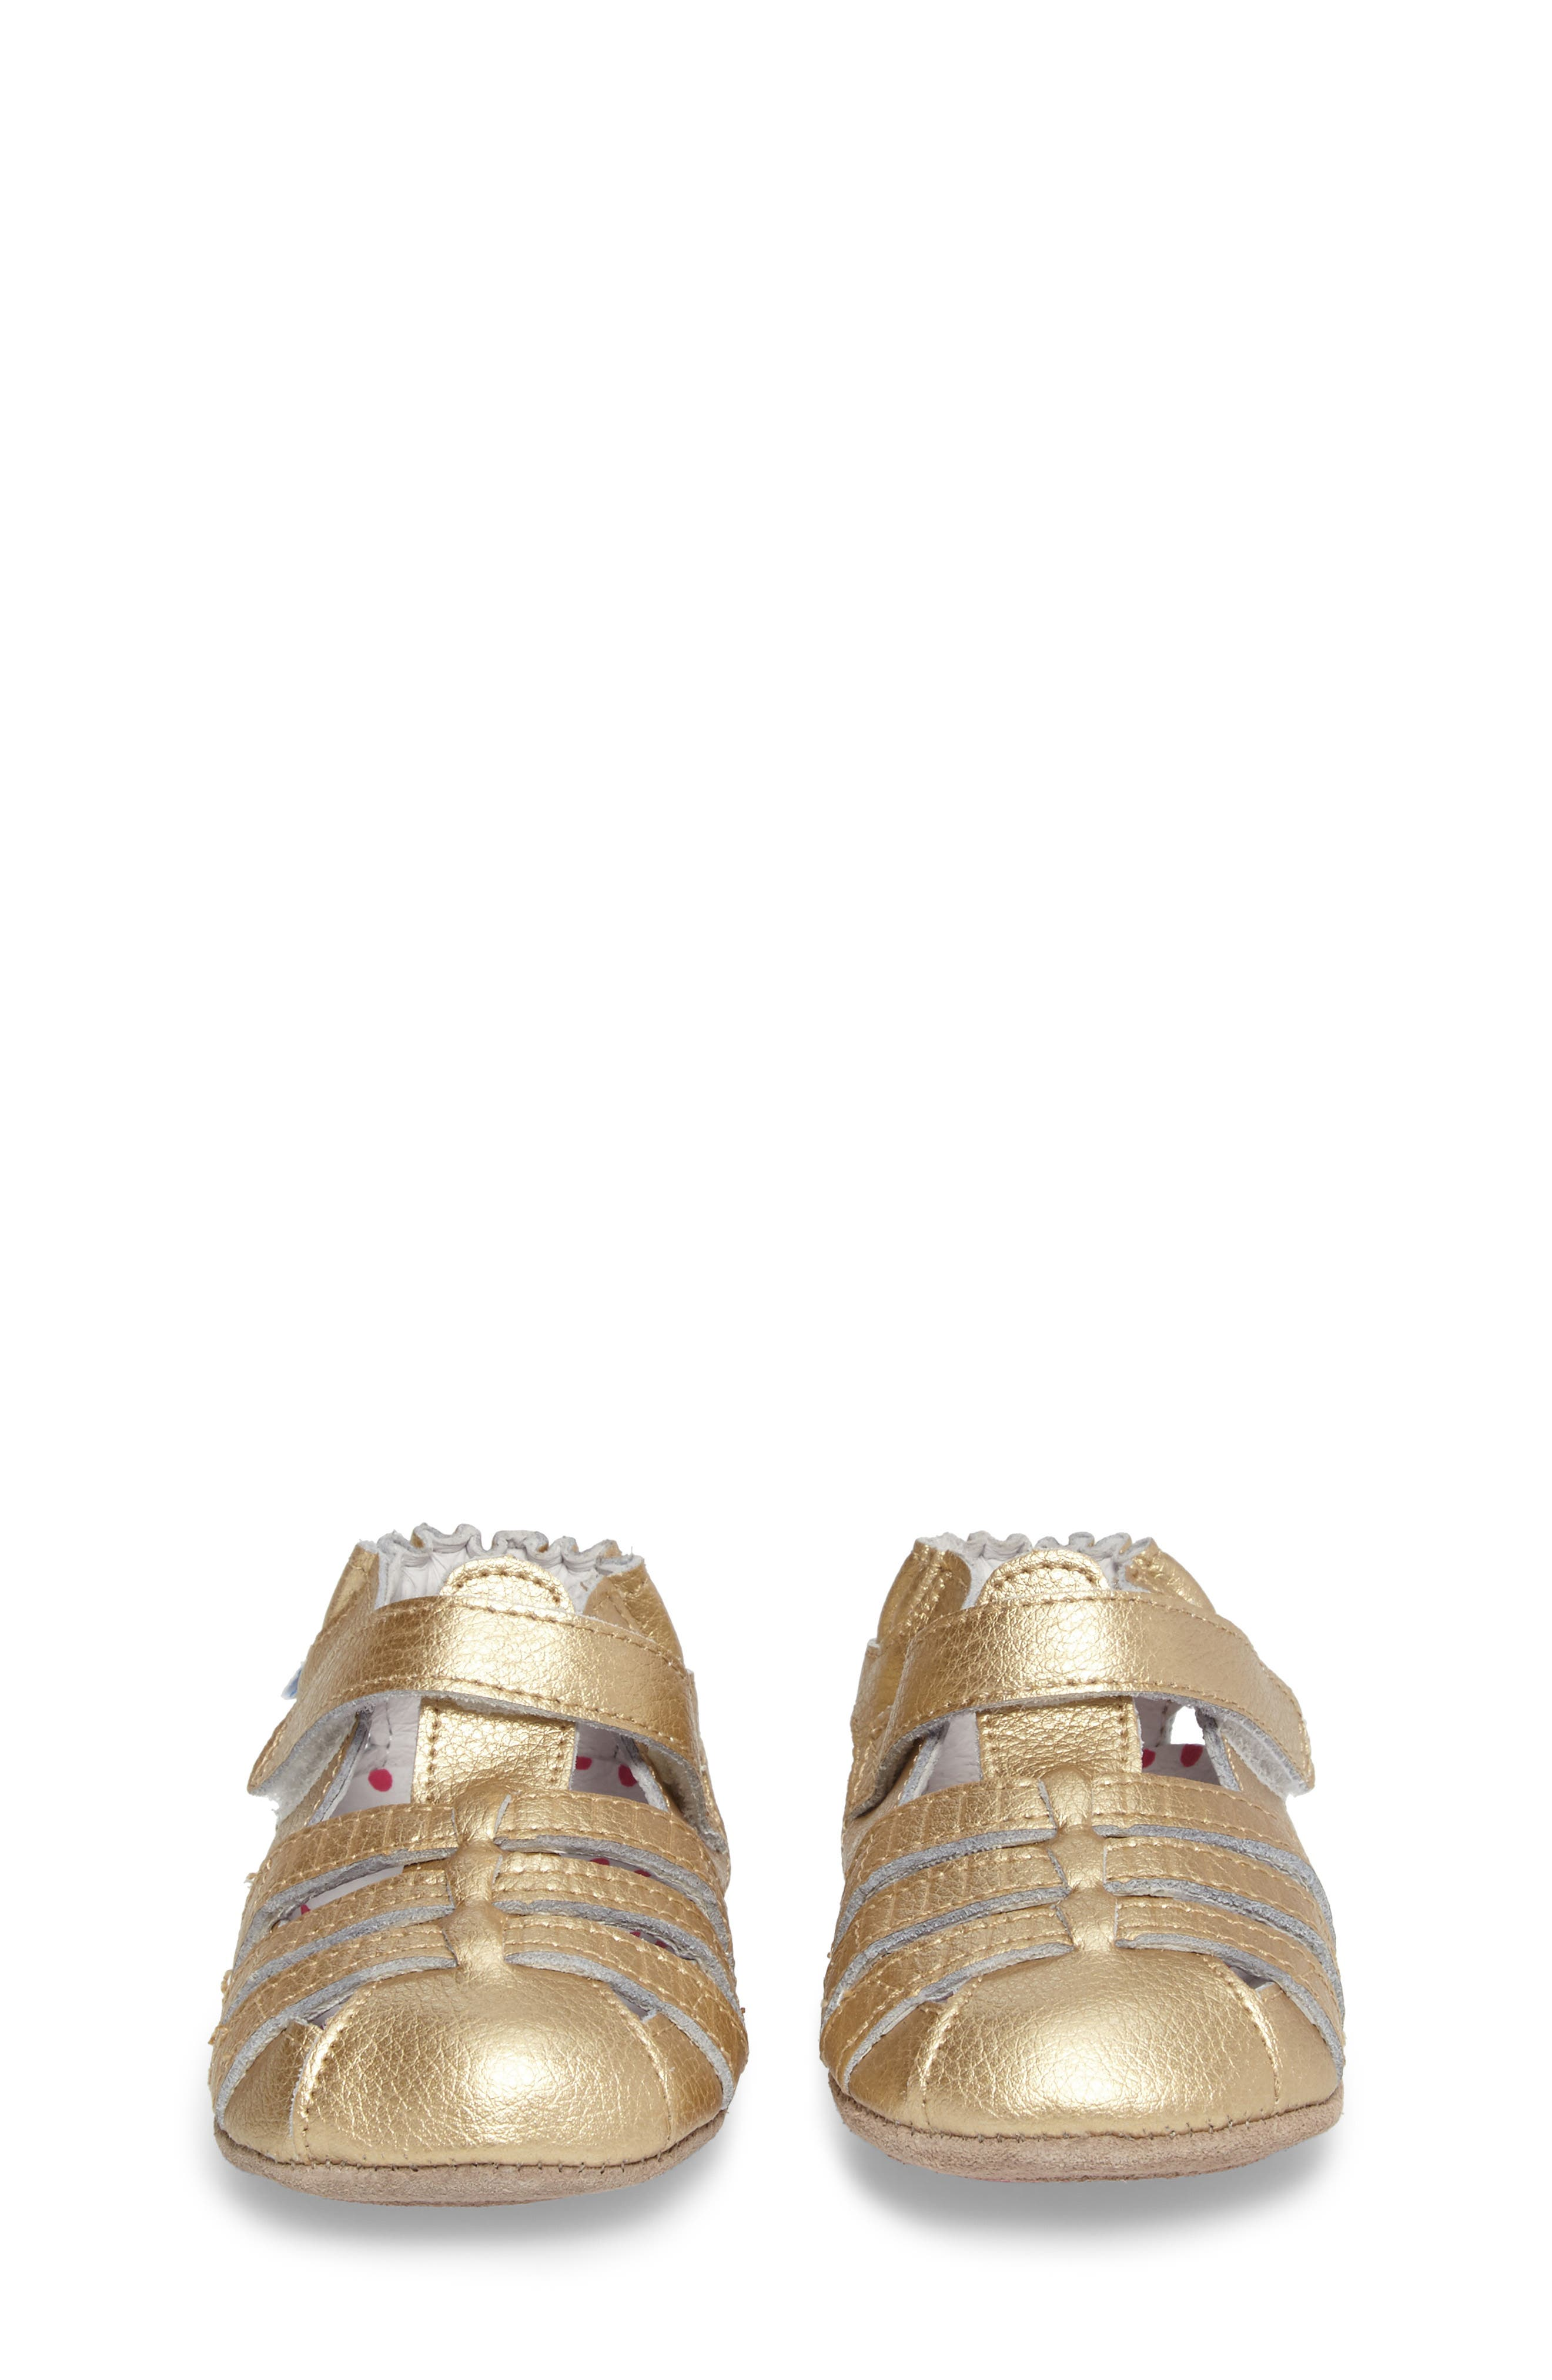 Paris Crib Shoe,                             Alternate thumbnail 4, color,                             Gold